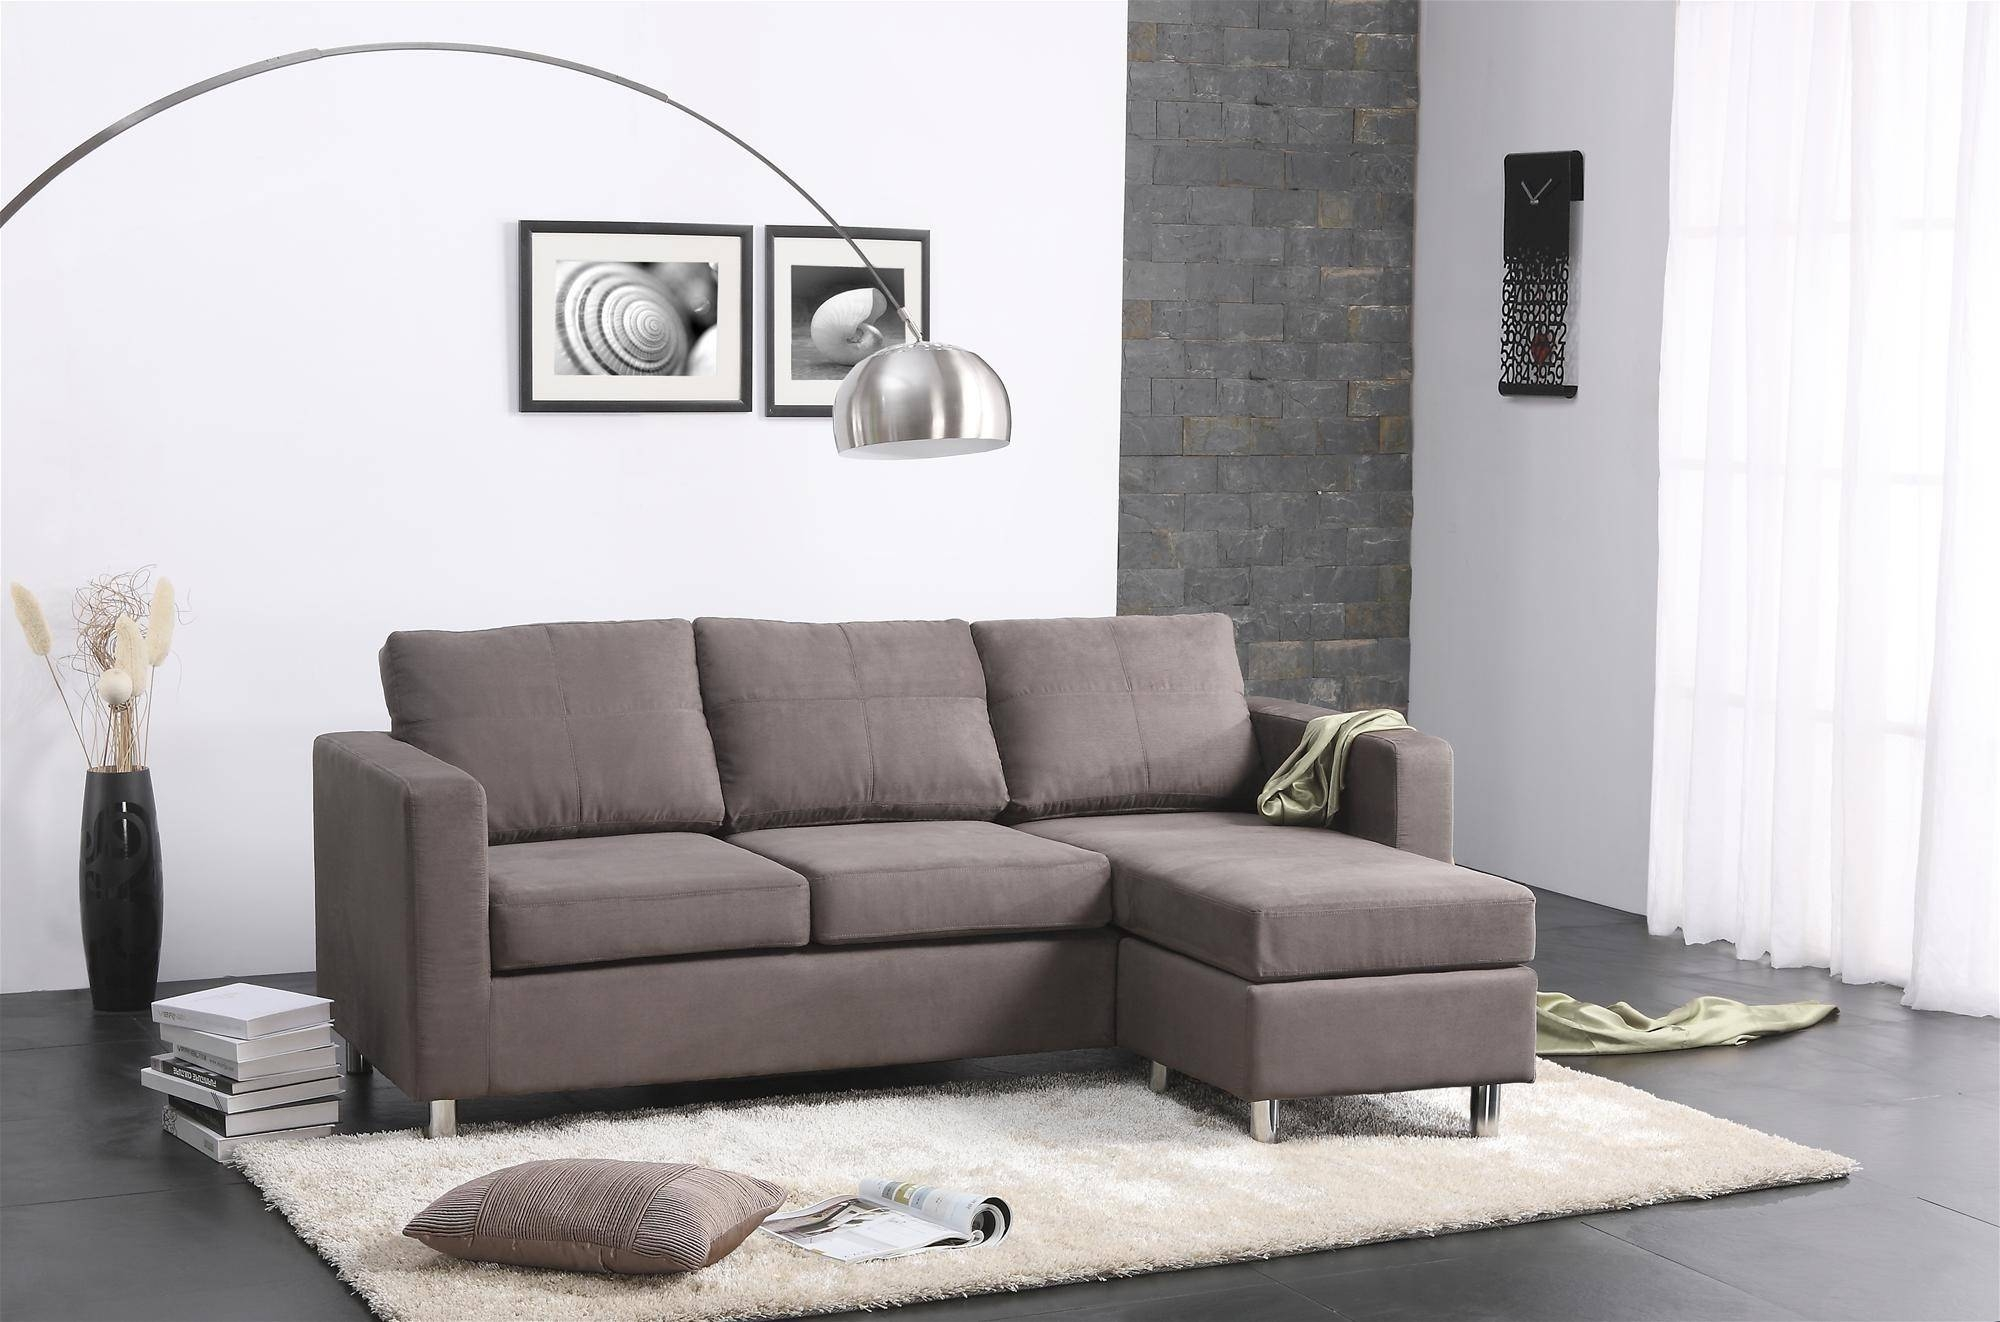 Best Apartment Sectional Sofas Images - Home Design Ideas - getradi.us